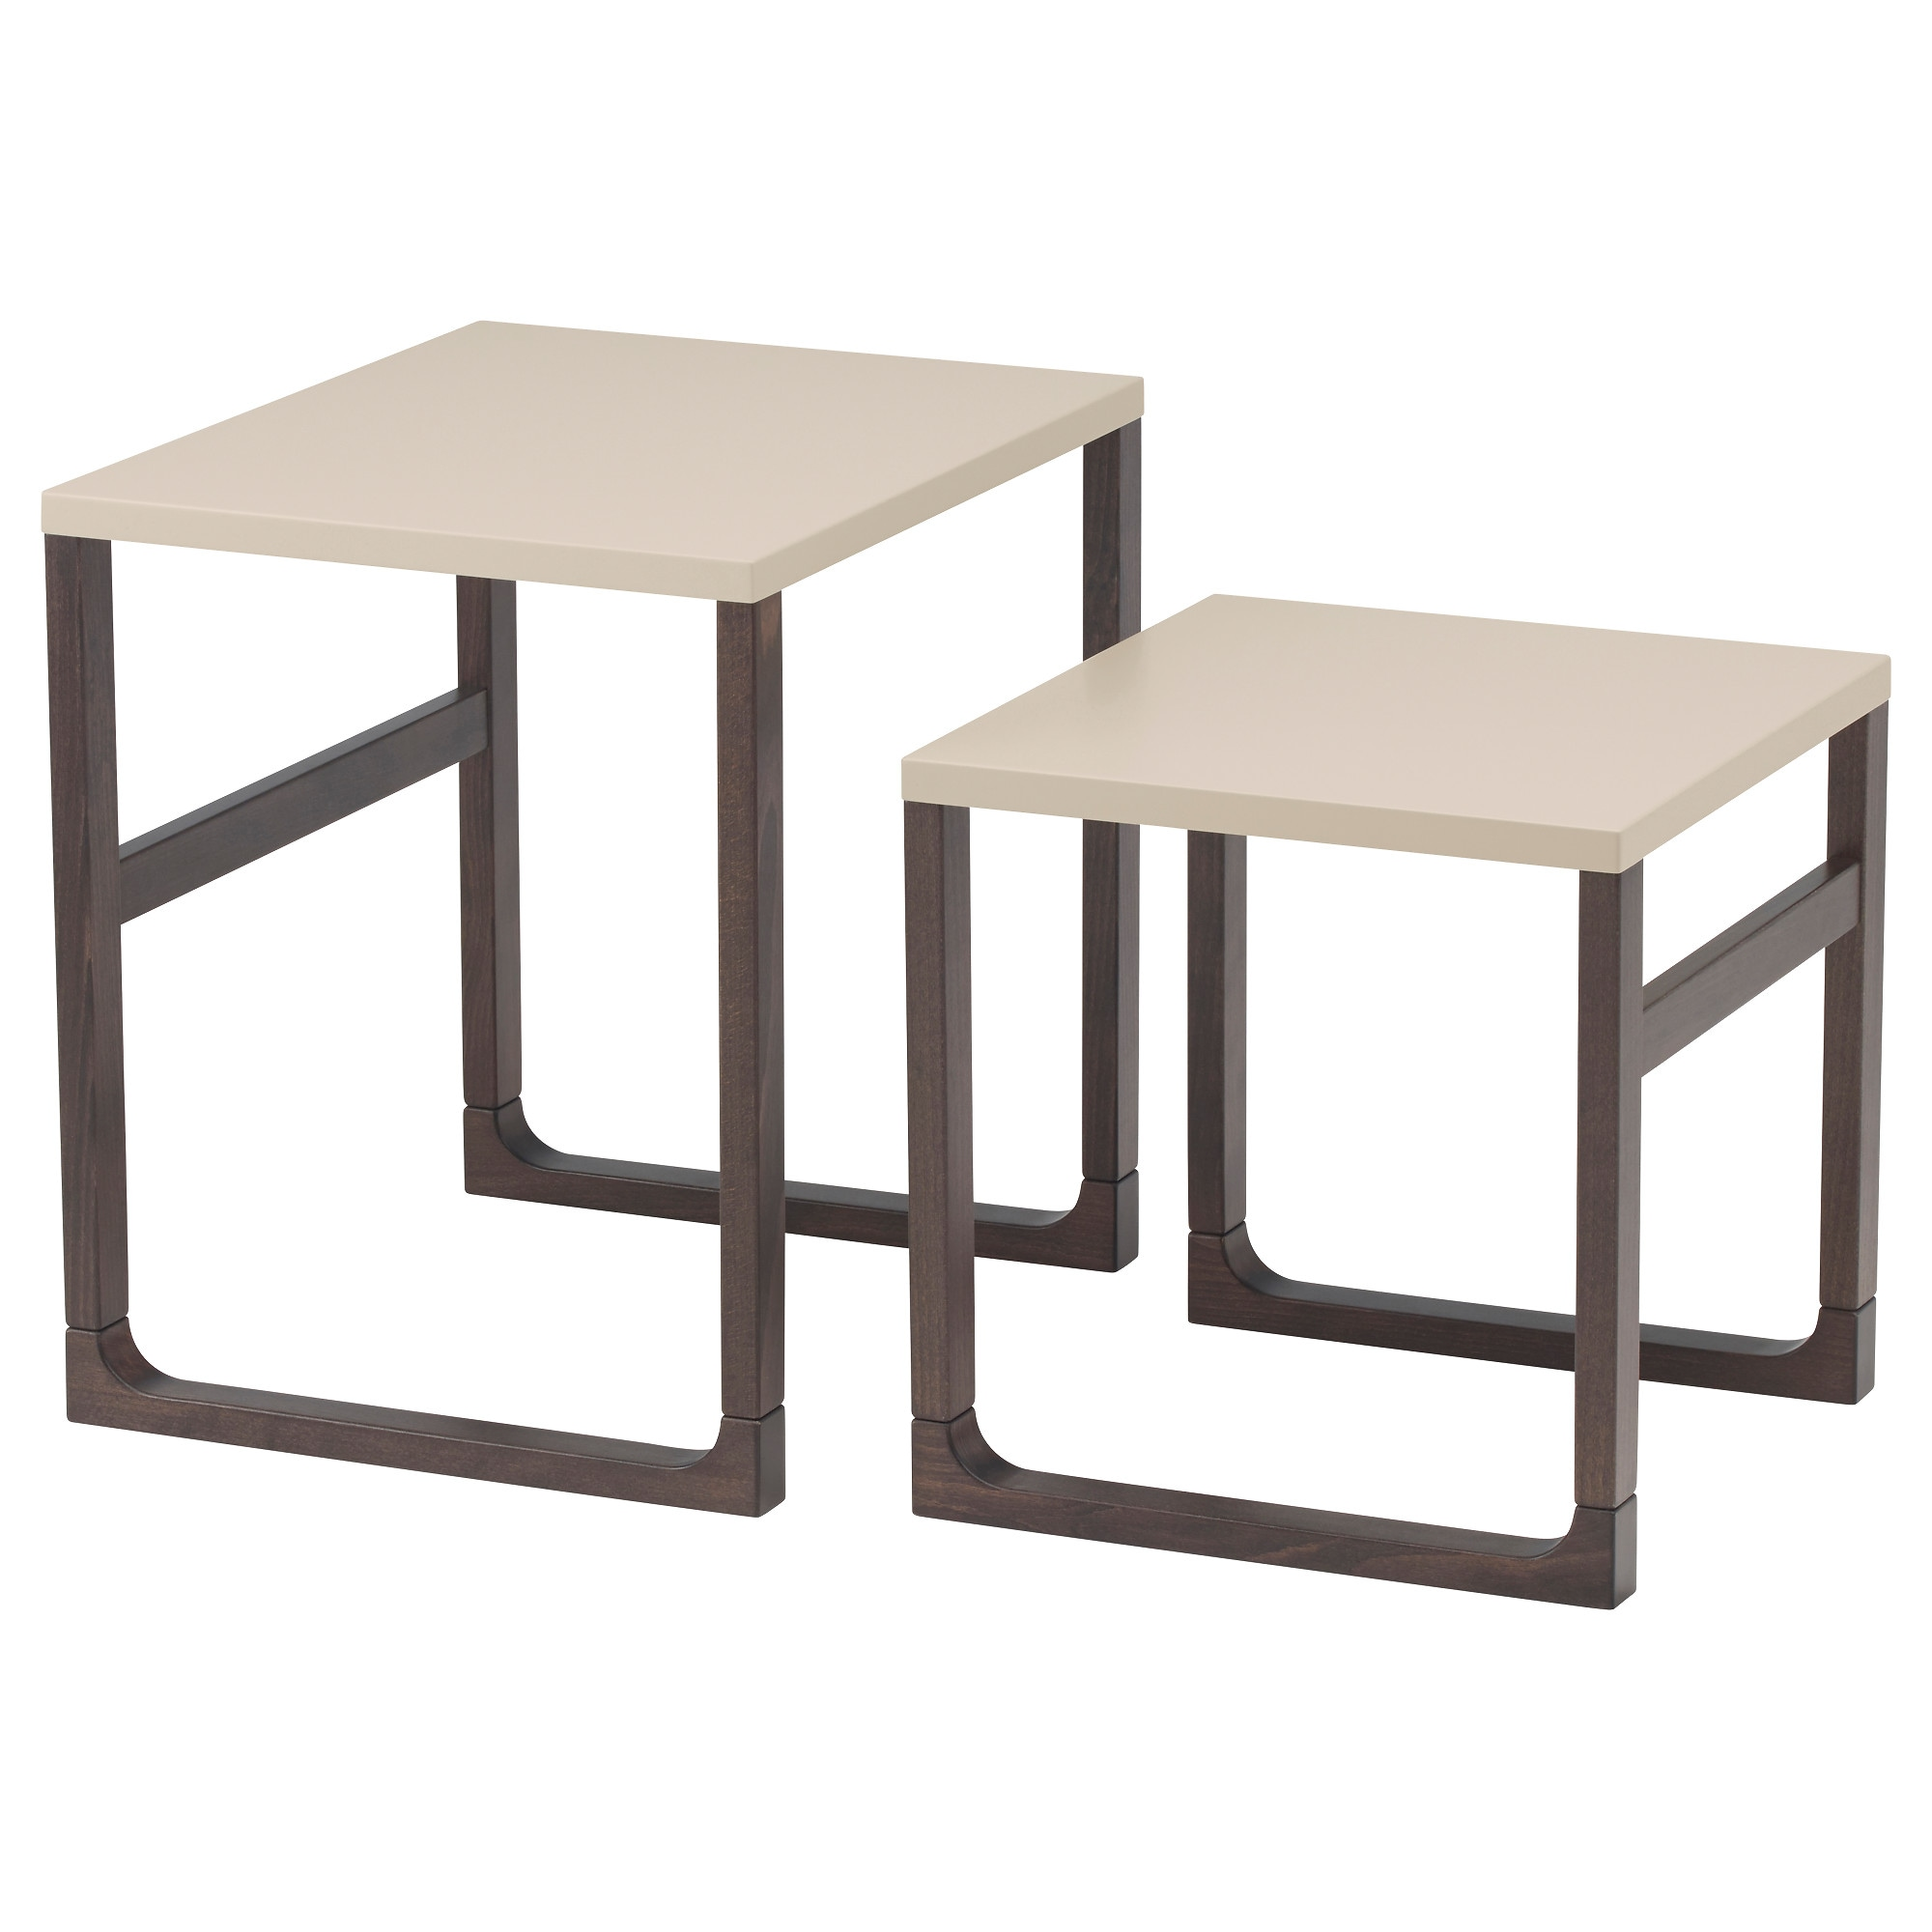 nesting end tables living room.  RISSNA Nesting tables set of 2 IKEA